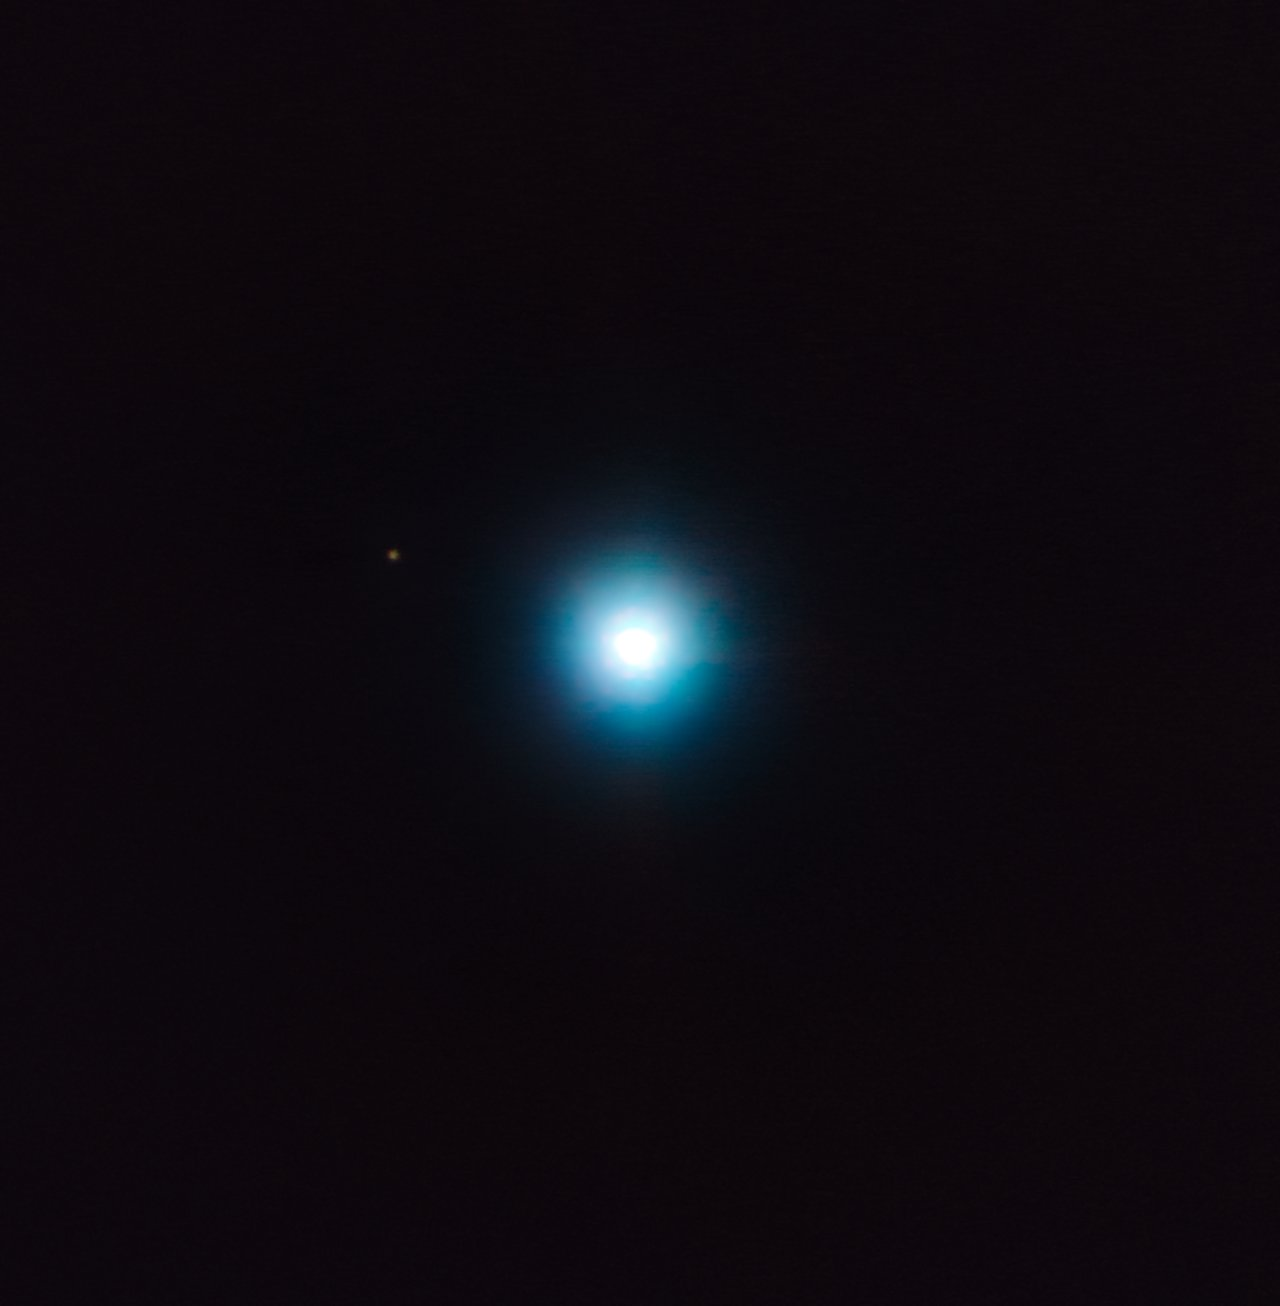 http://www.space.com/images/i/000/056/178/original/exoplanet-direct-image-eso.jpg?interpolation=lanczos-none&fit=inside|660:*